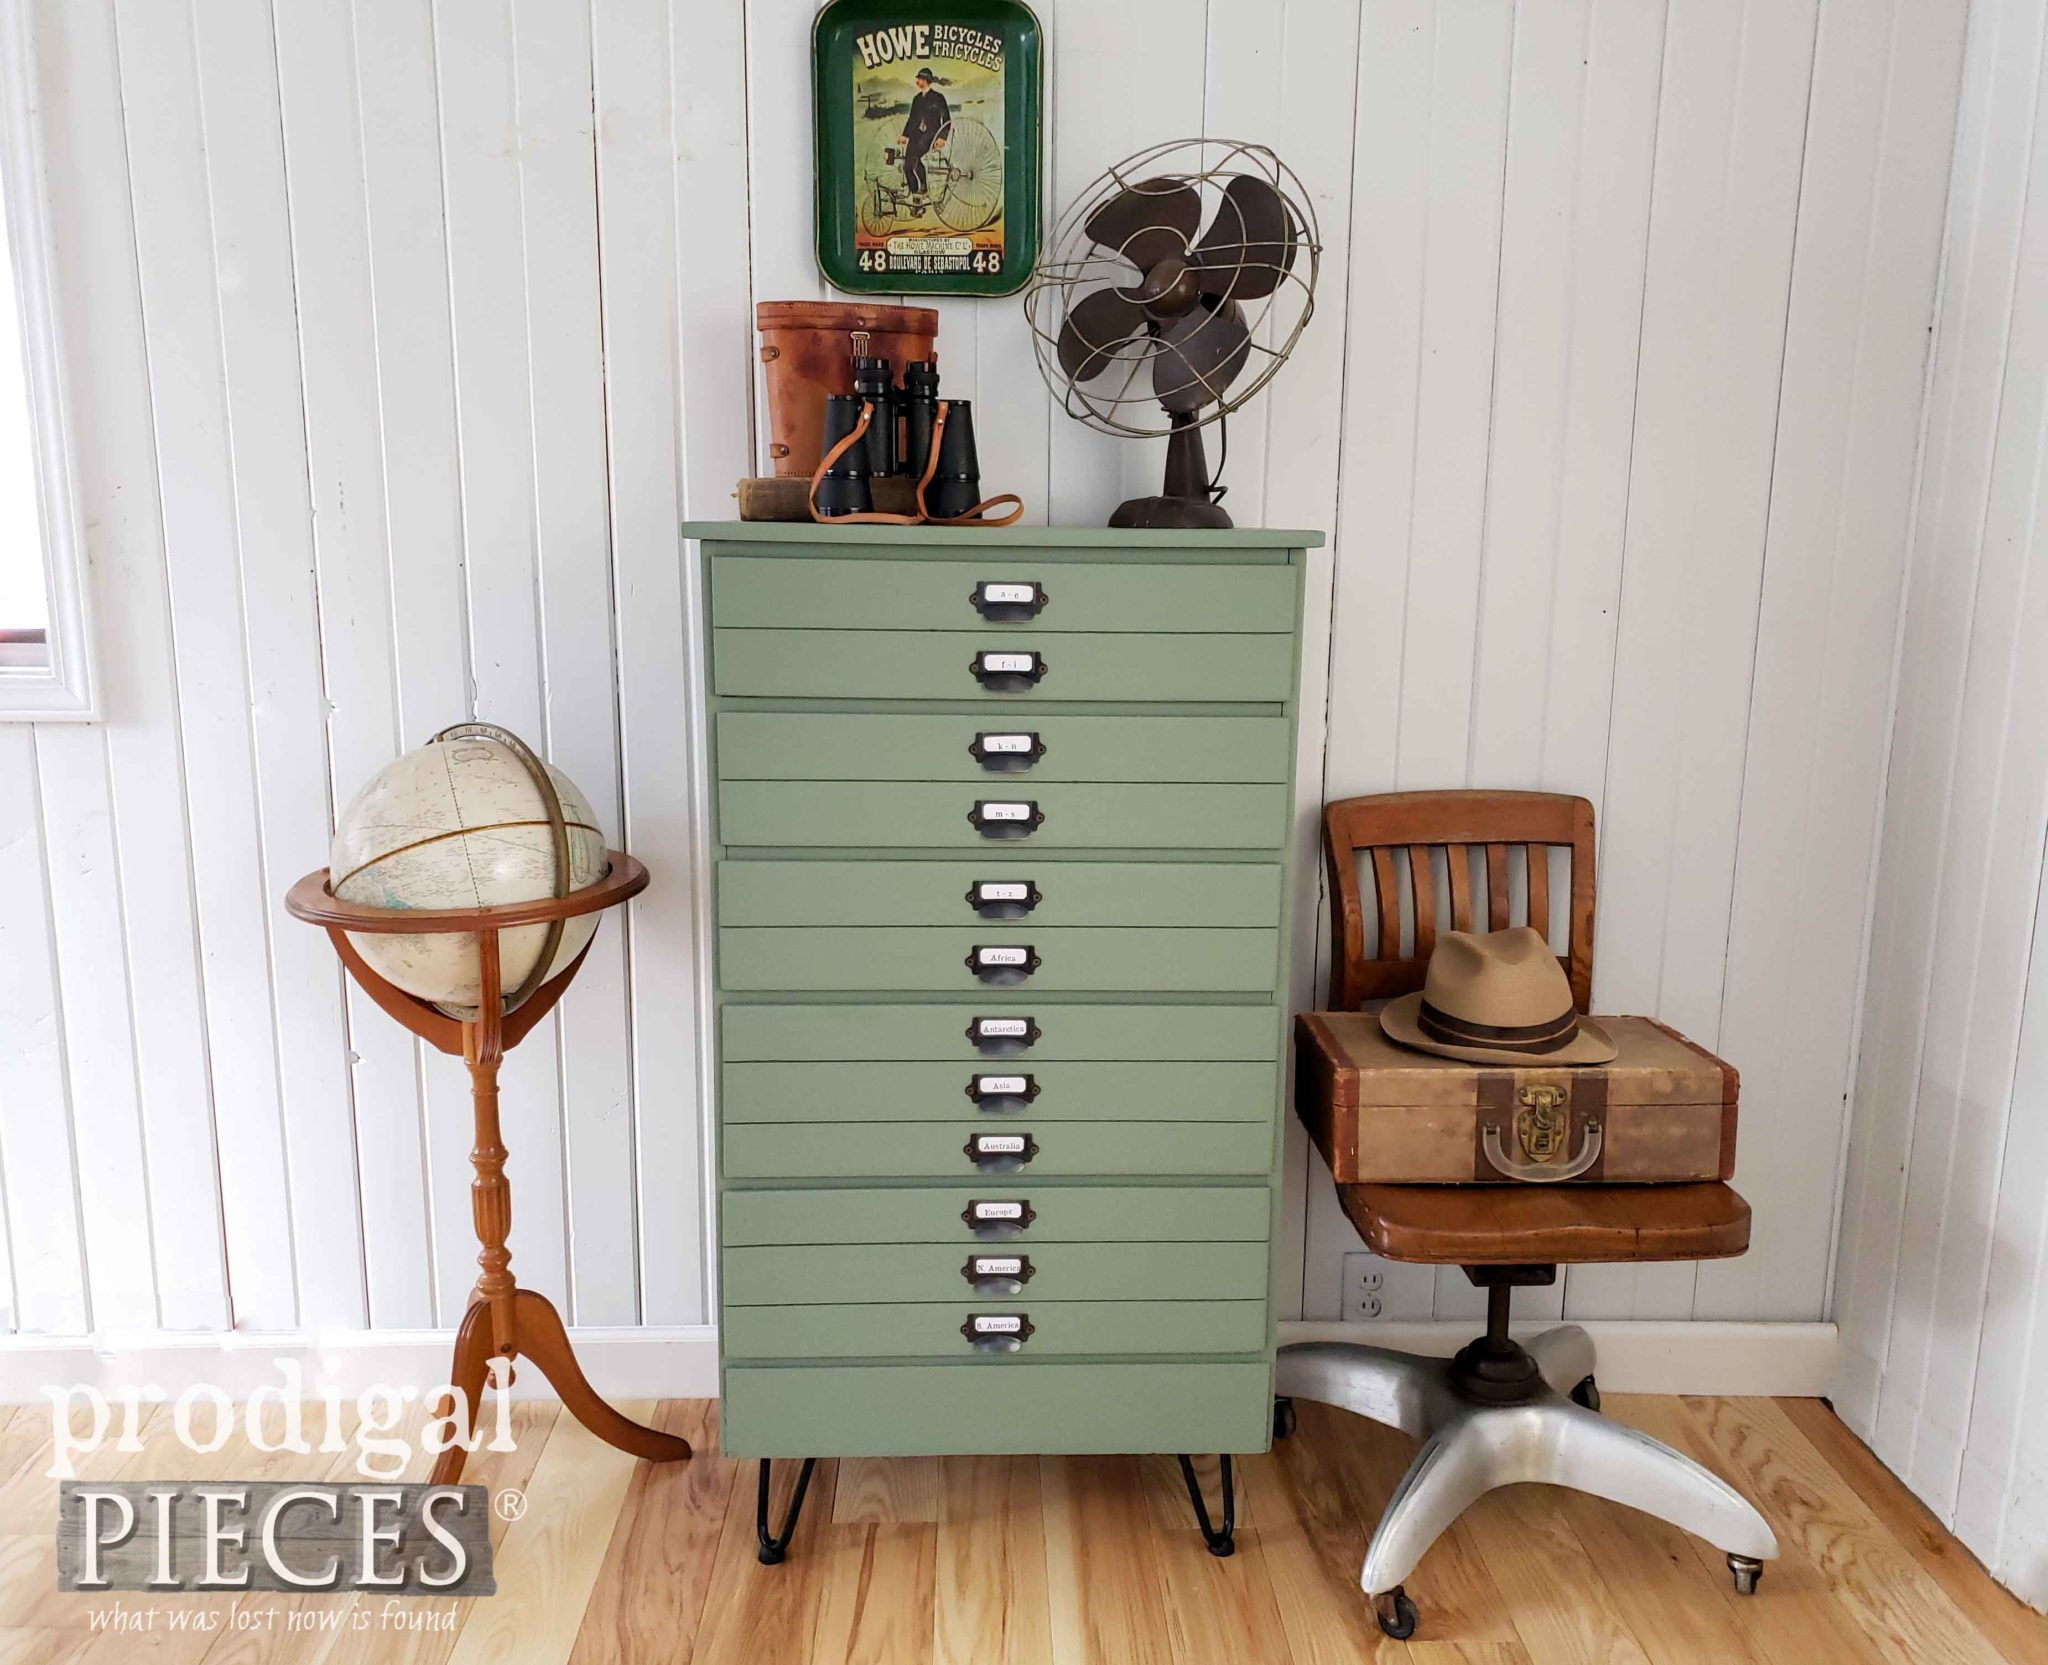 Upcycled Vintage Map Cabinet with Apothecary Pulls by Larissa of Prodigal Pieces | prodigalpieces.com #prodigalpieces #furniture #shopping #home #homedecor #homedecorideas #farmhouse